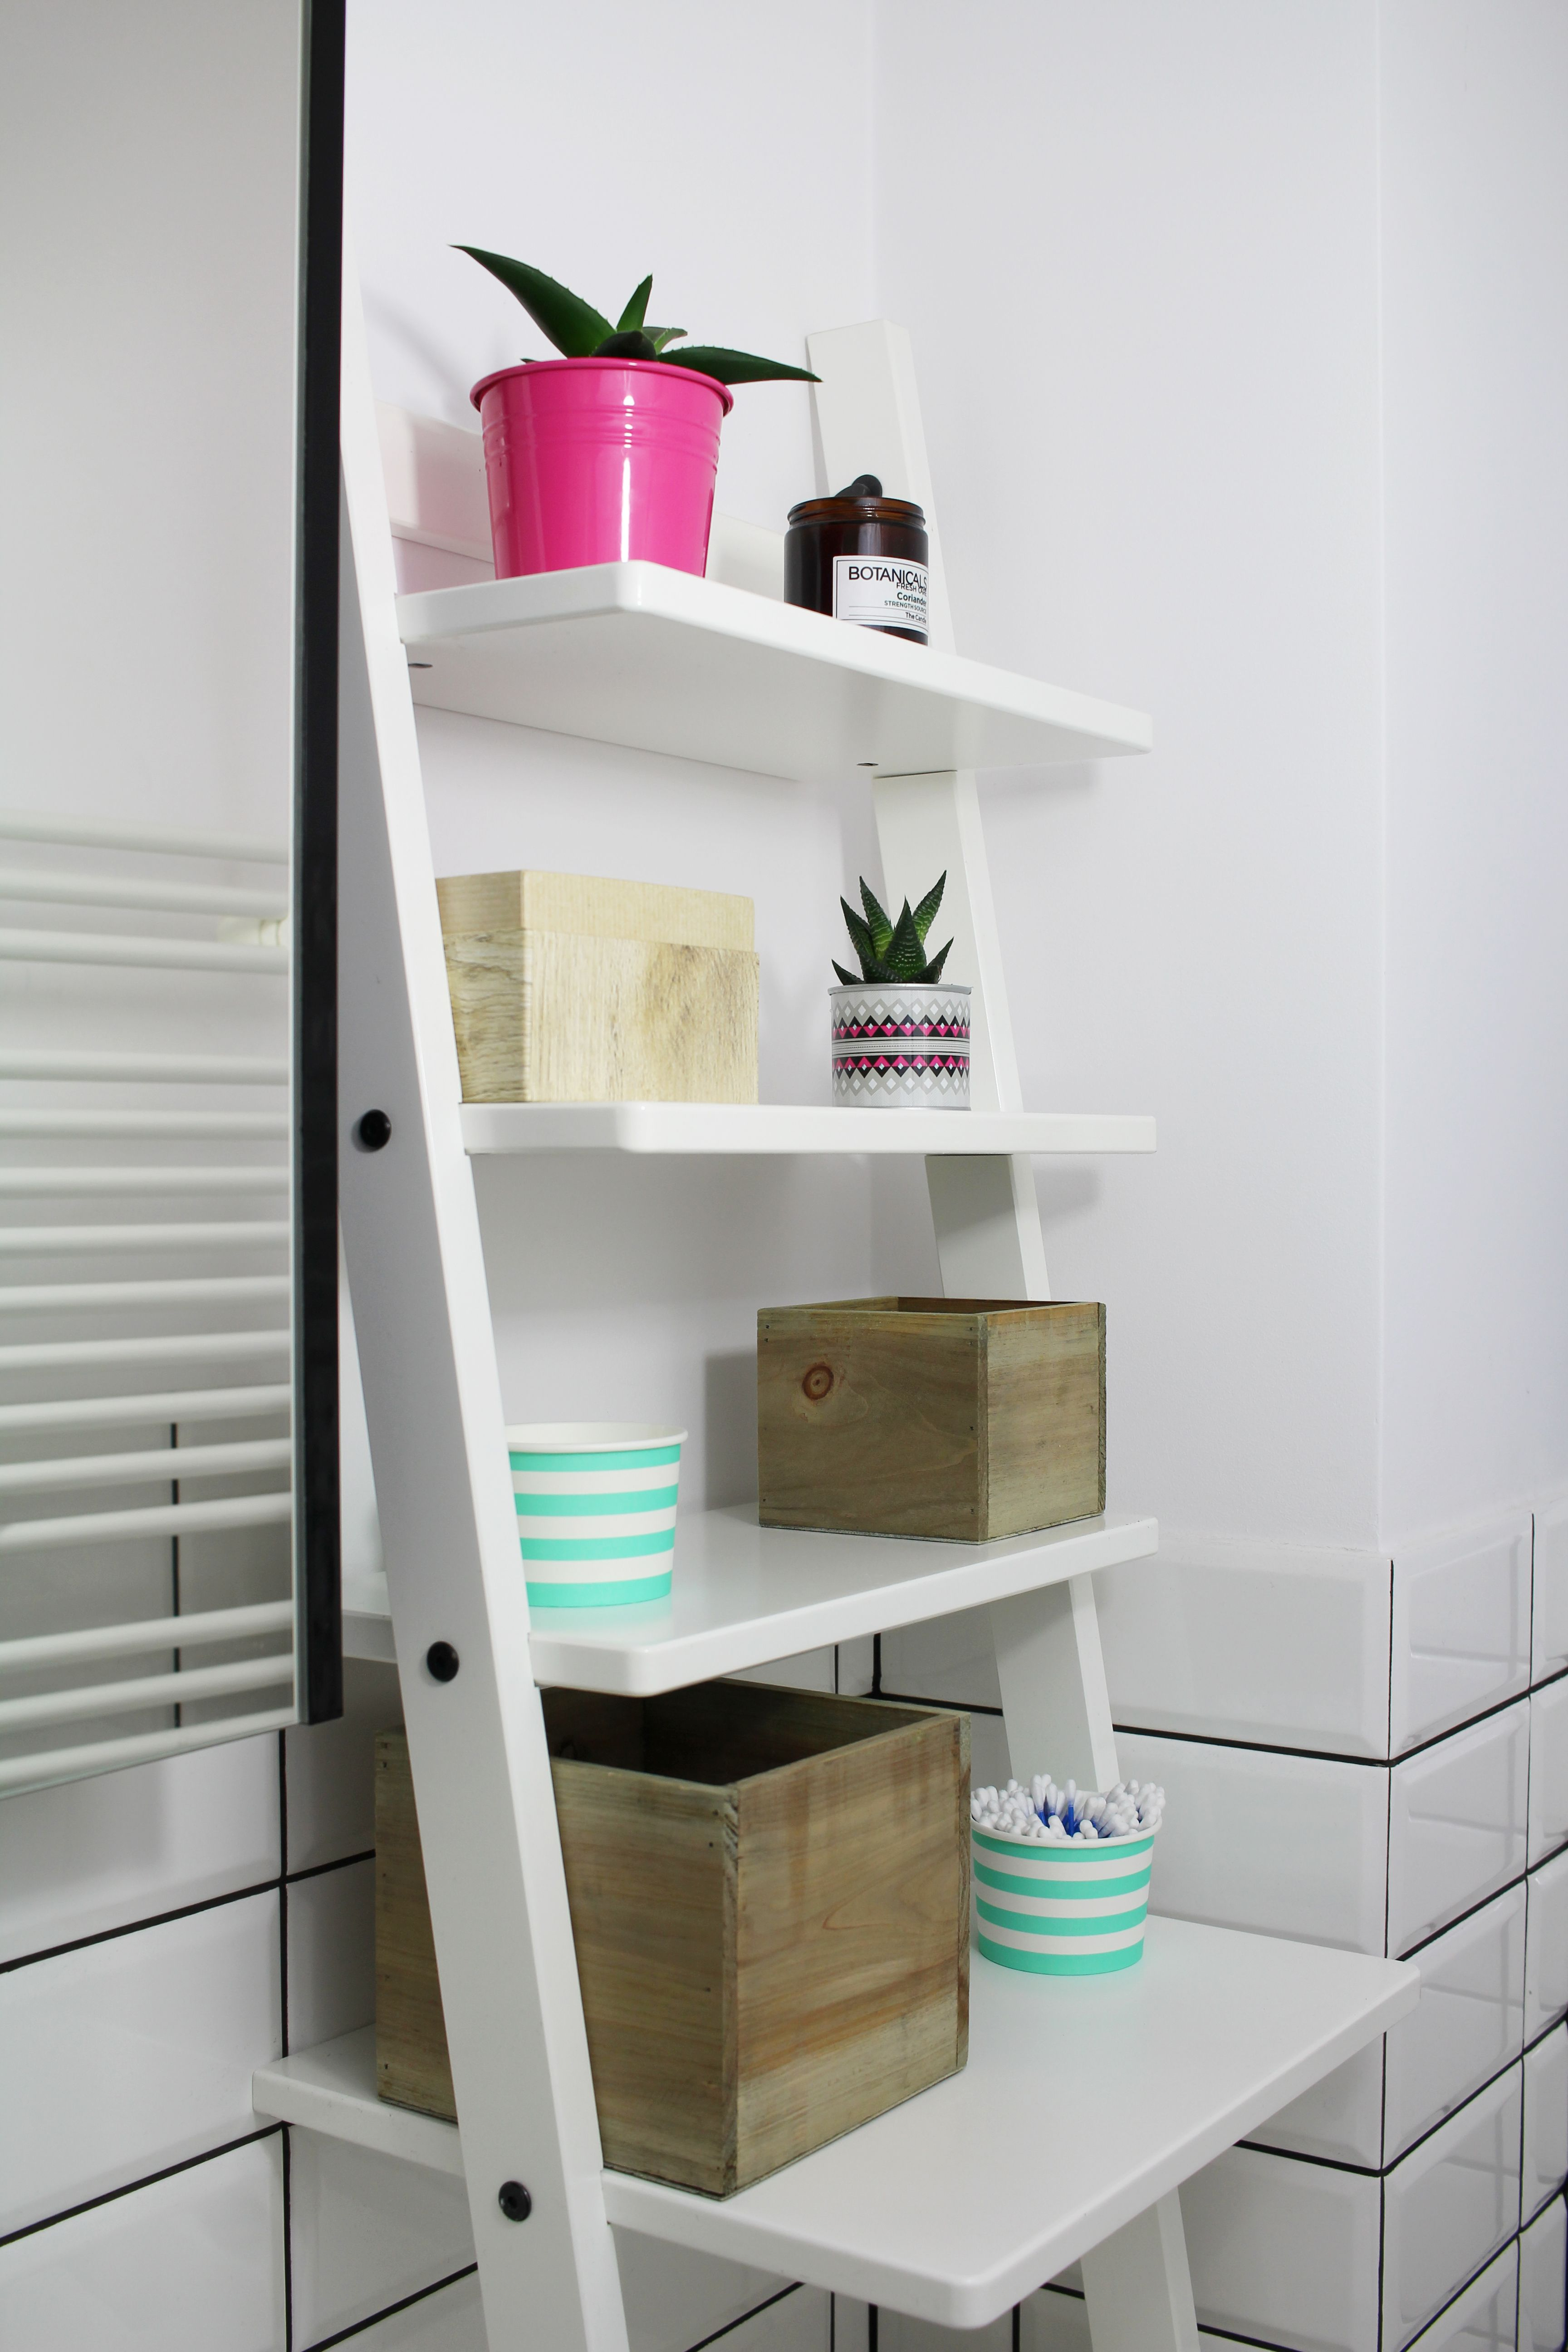 7 Small Bathroom Organization Ideas You Need In Your Life Now